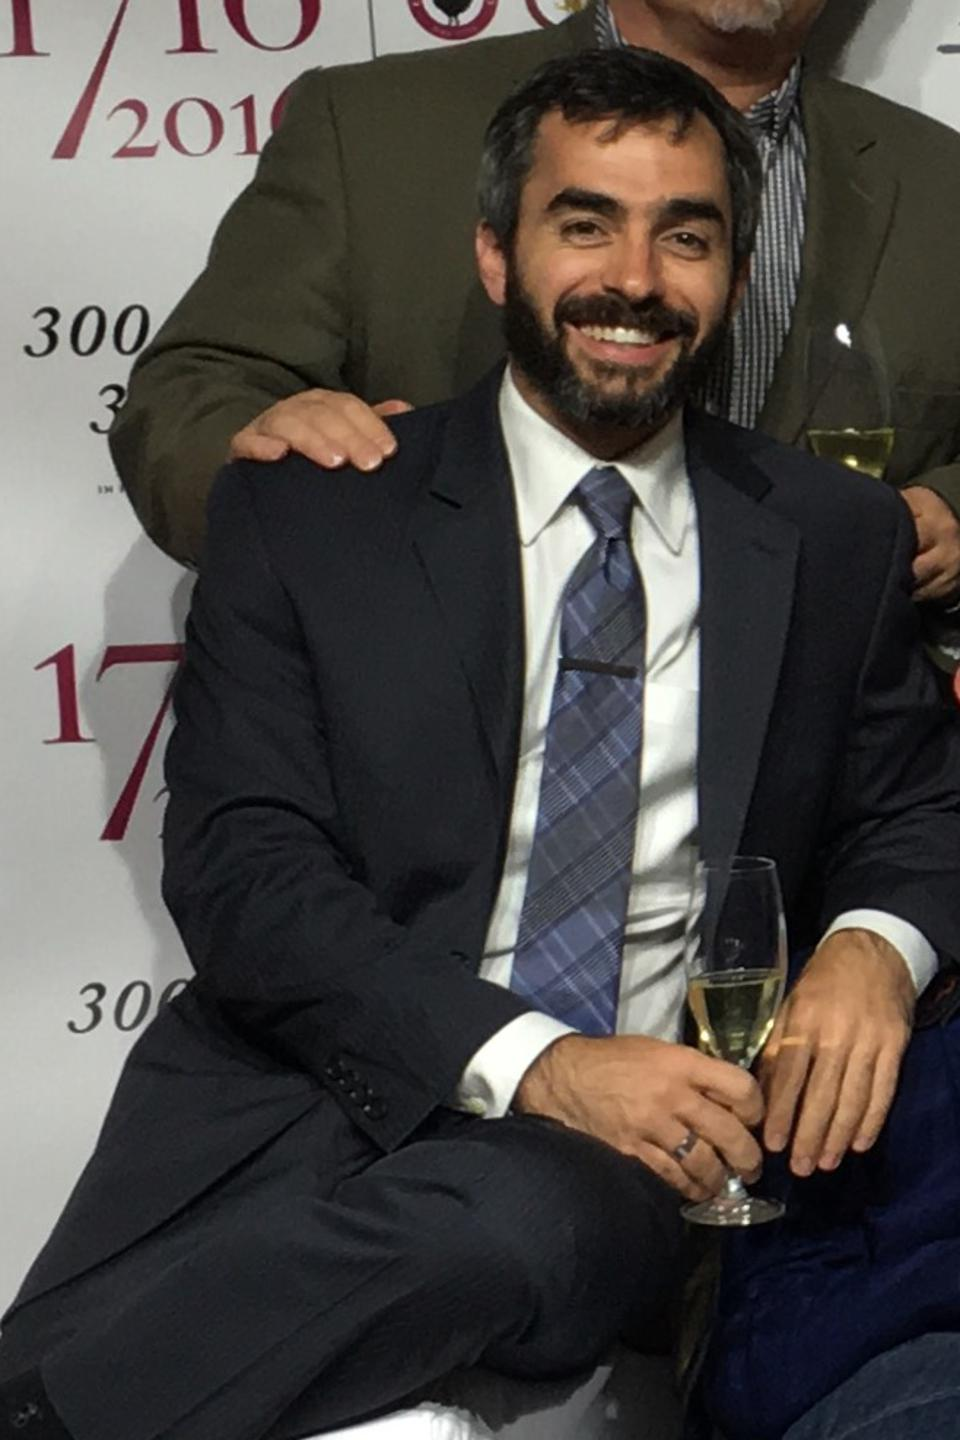 Bearded man sitting with a glass of wine.